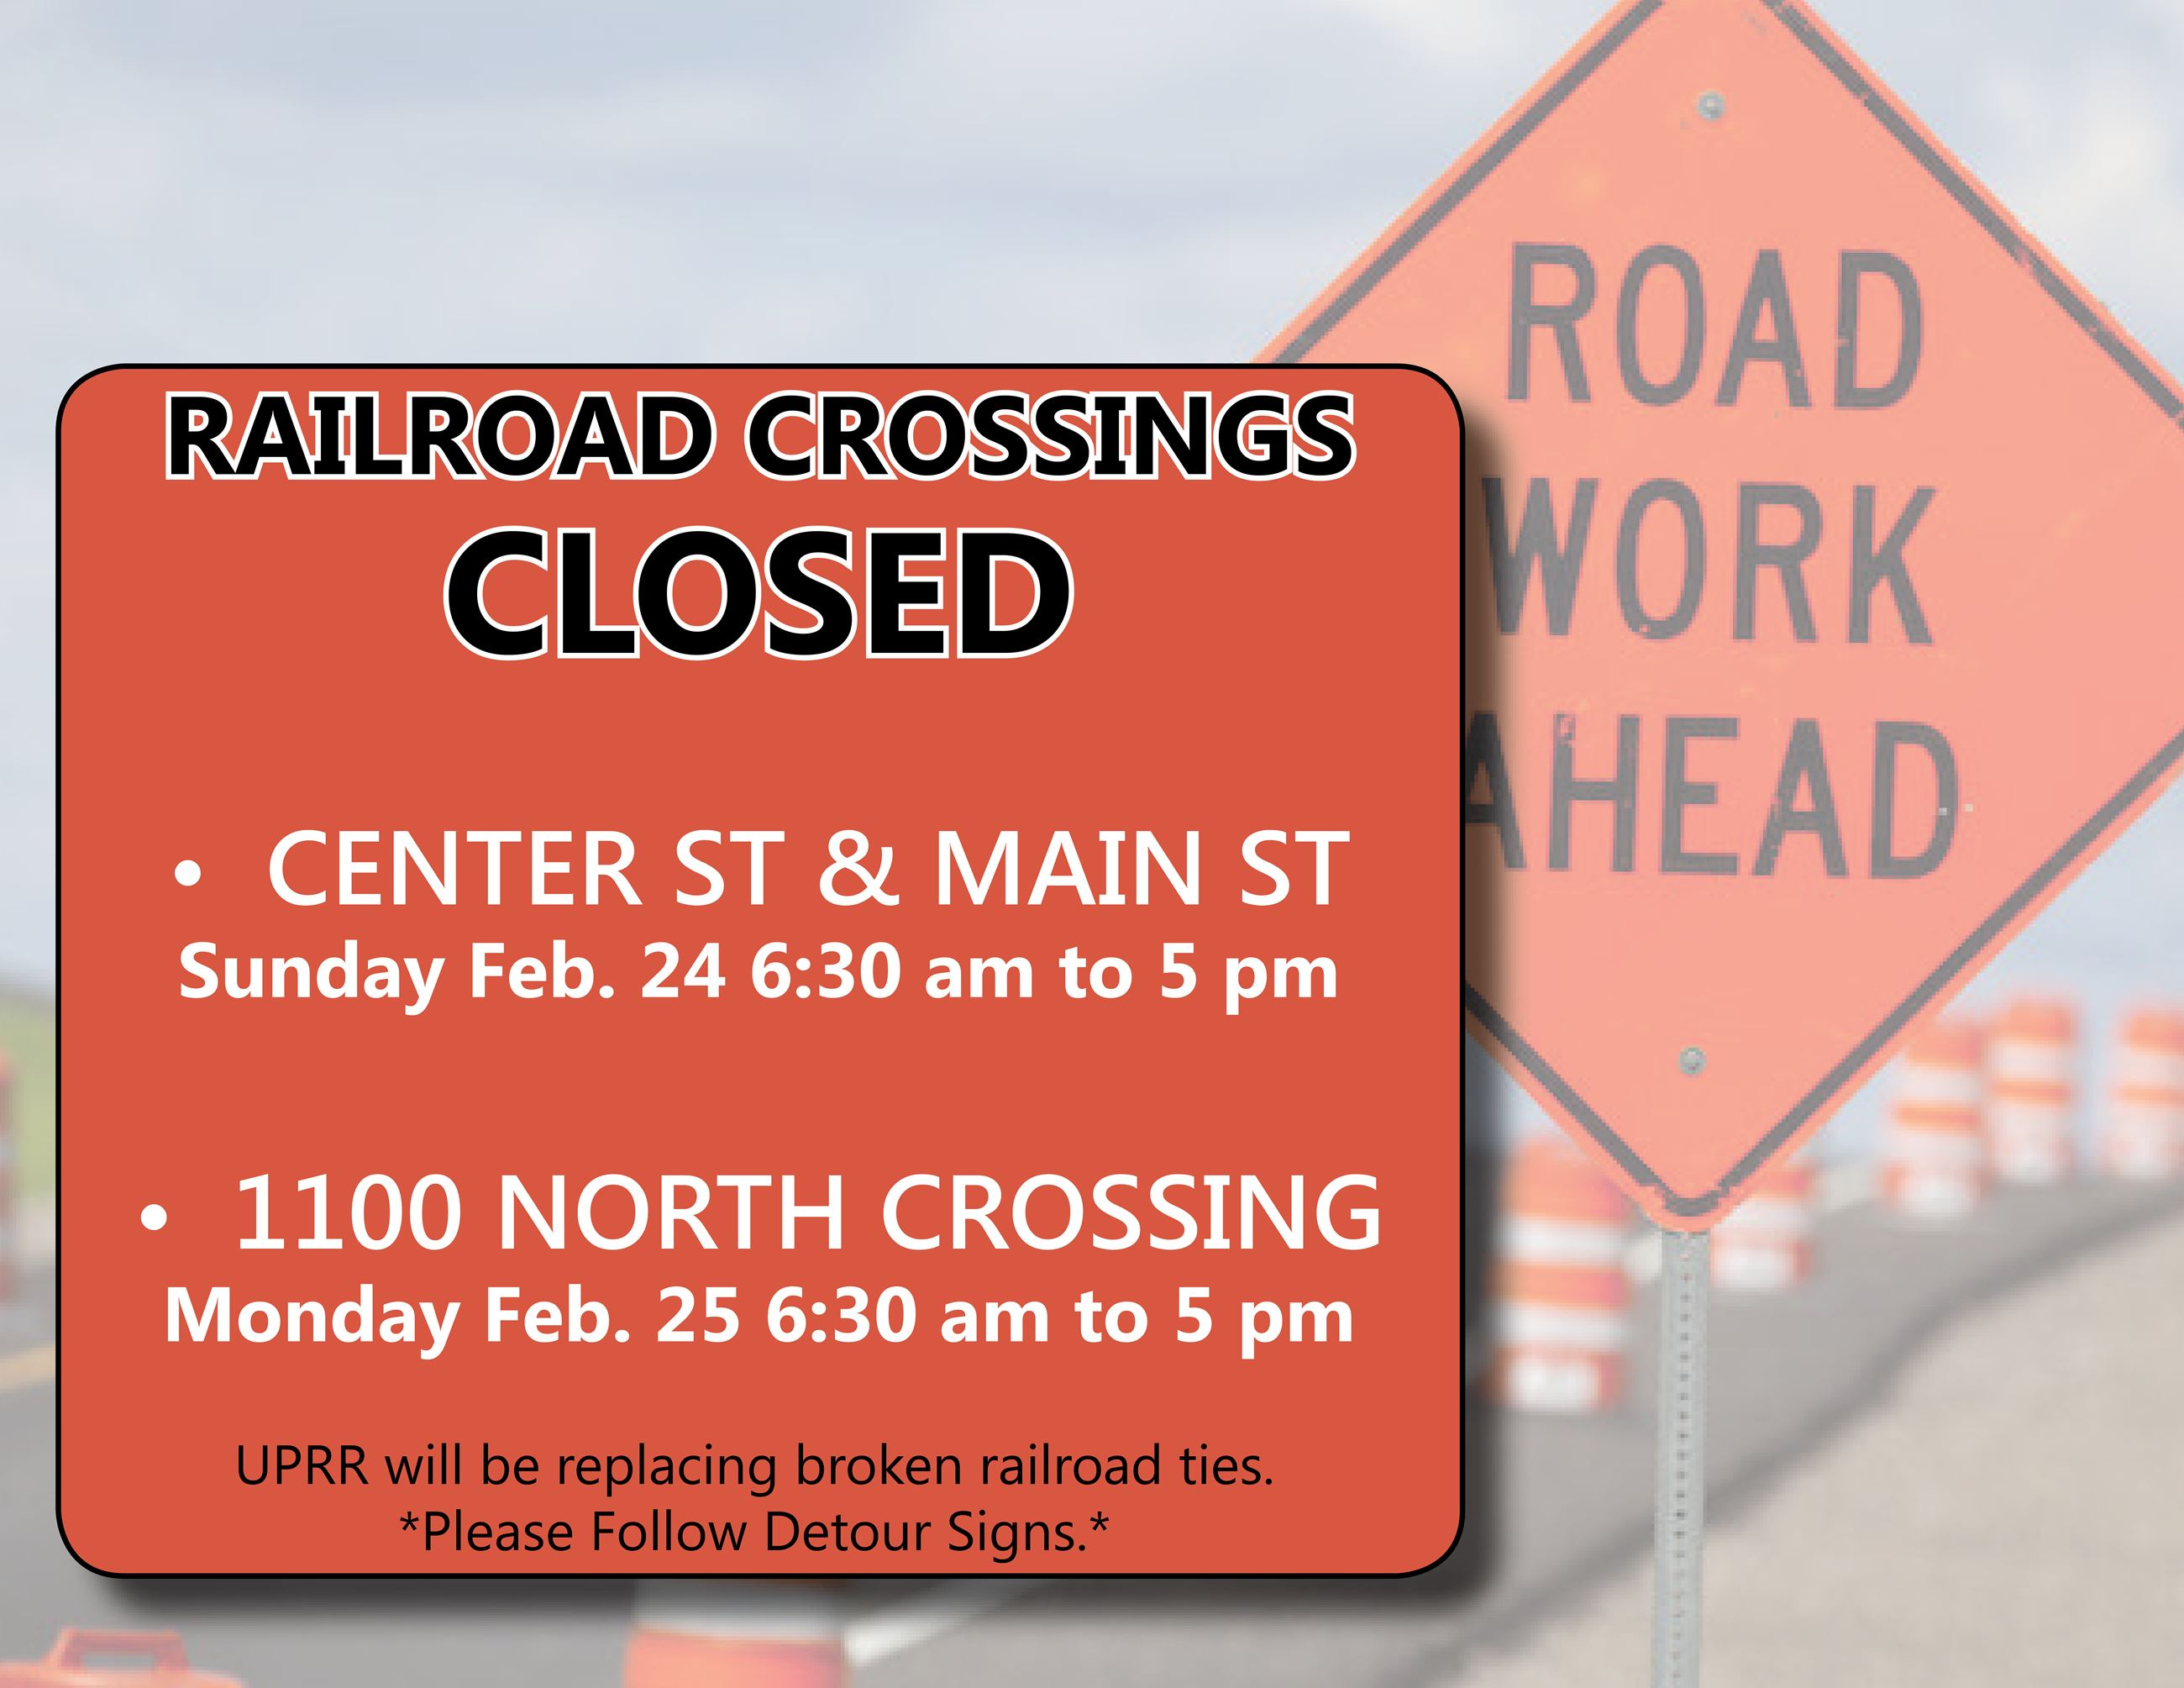 Road Construction railroad crossing closures Feb 24 and 25 2019